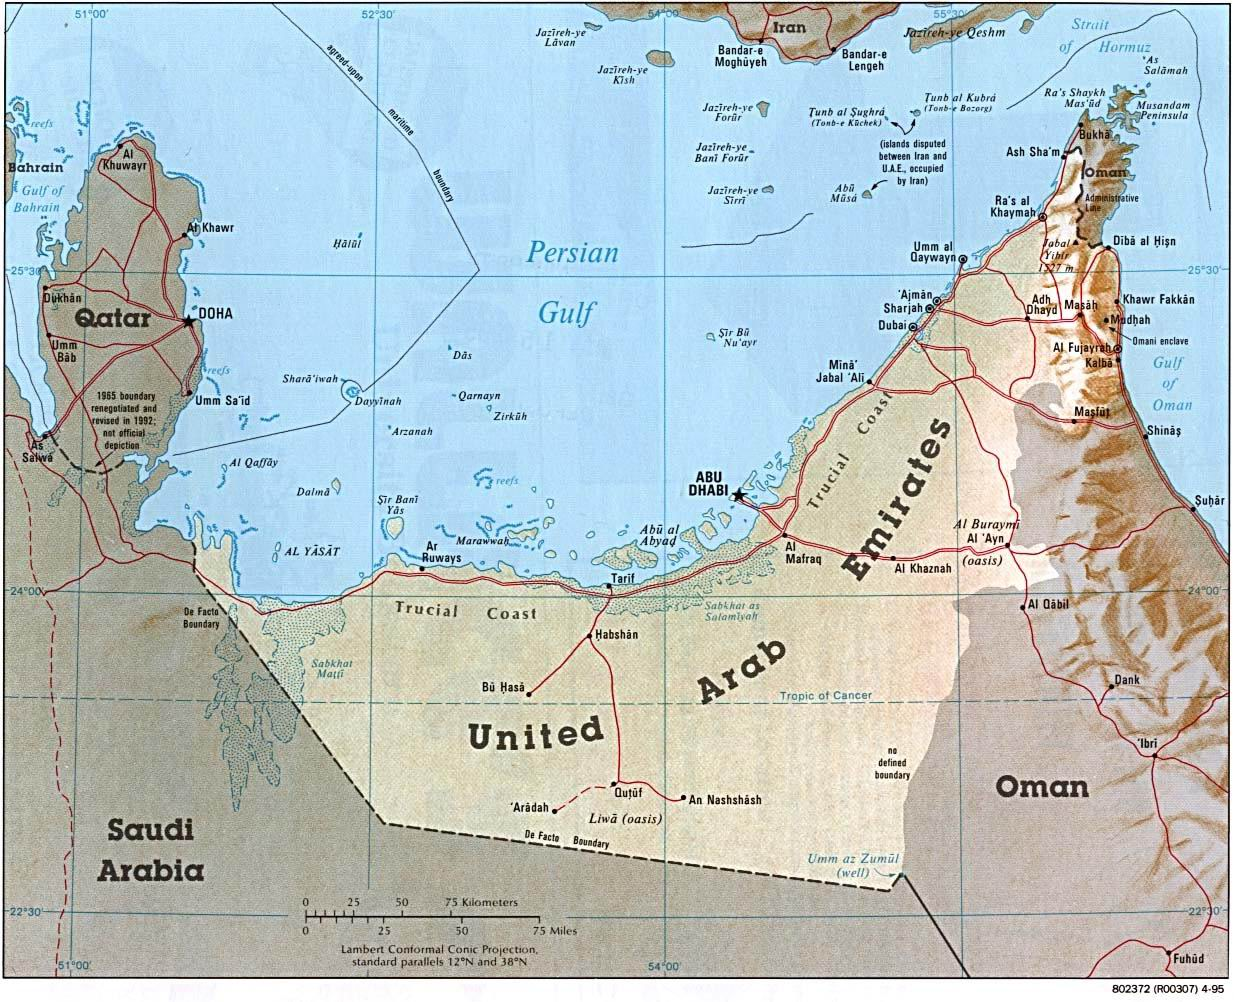 United Arab Emirates (Shaded Relief) 1995